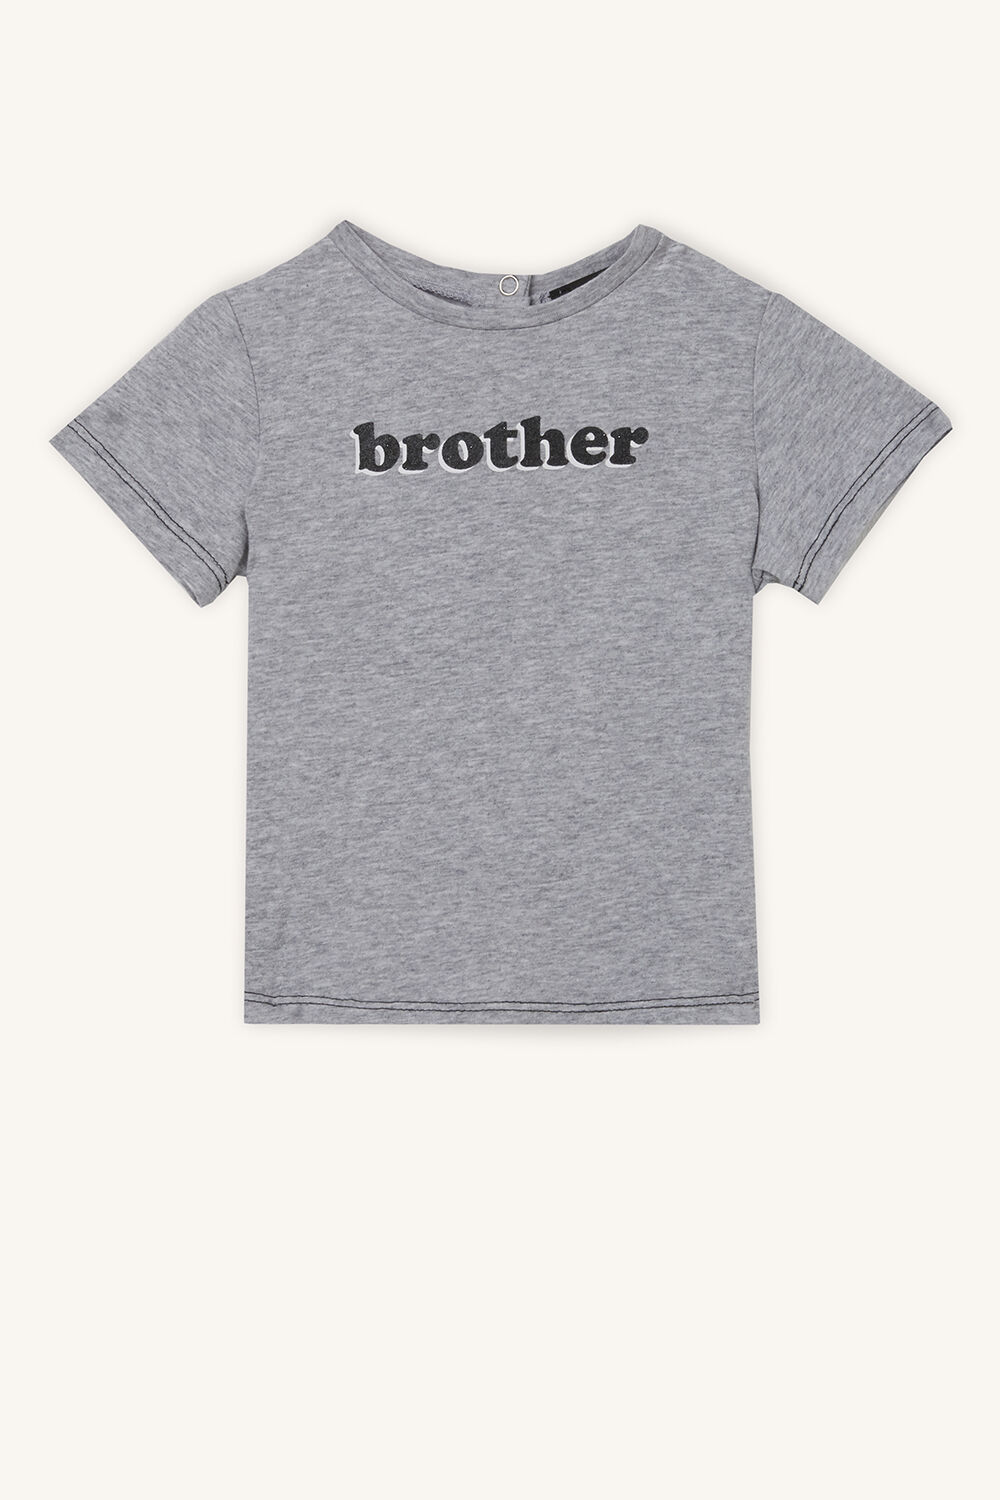 BROTHER TEE in colour VAPOR BLUE